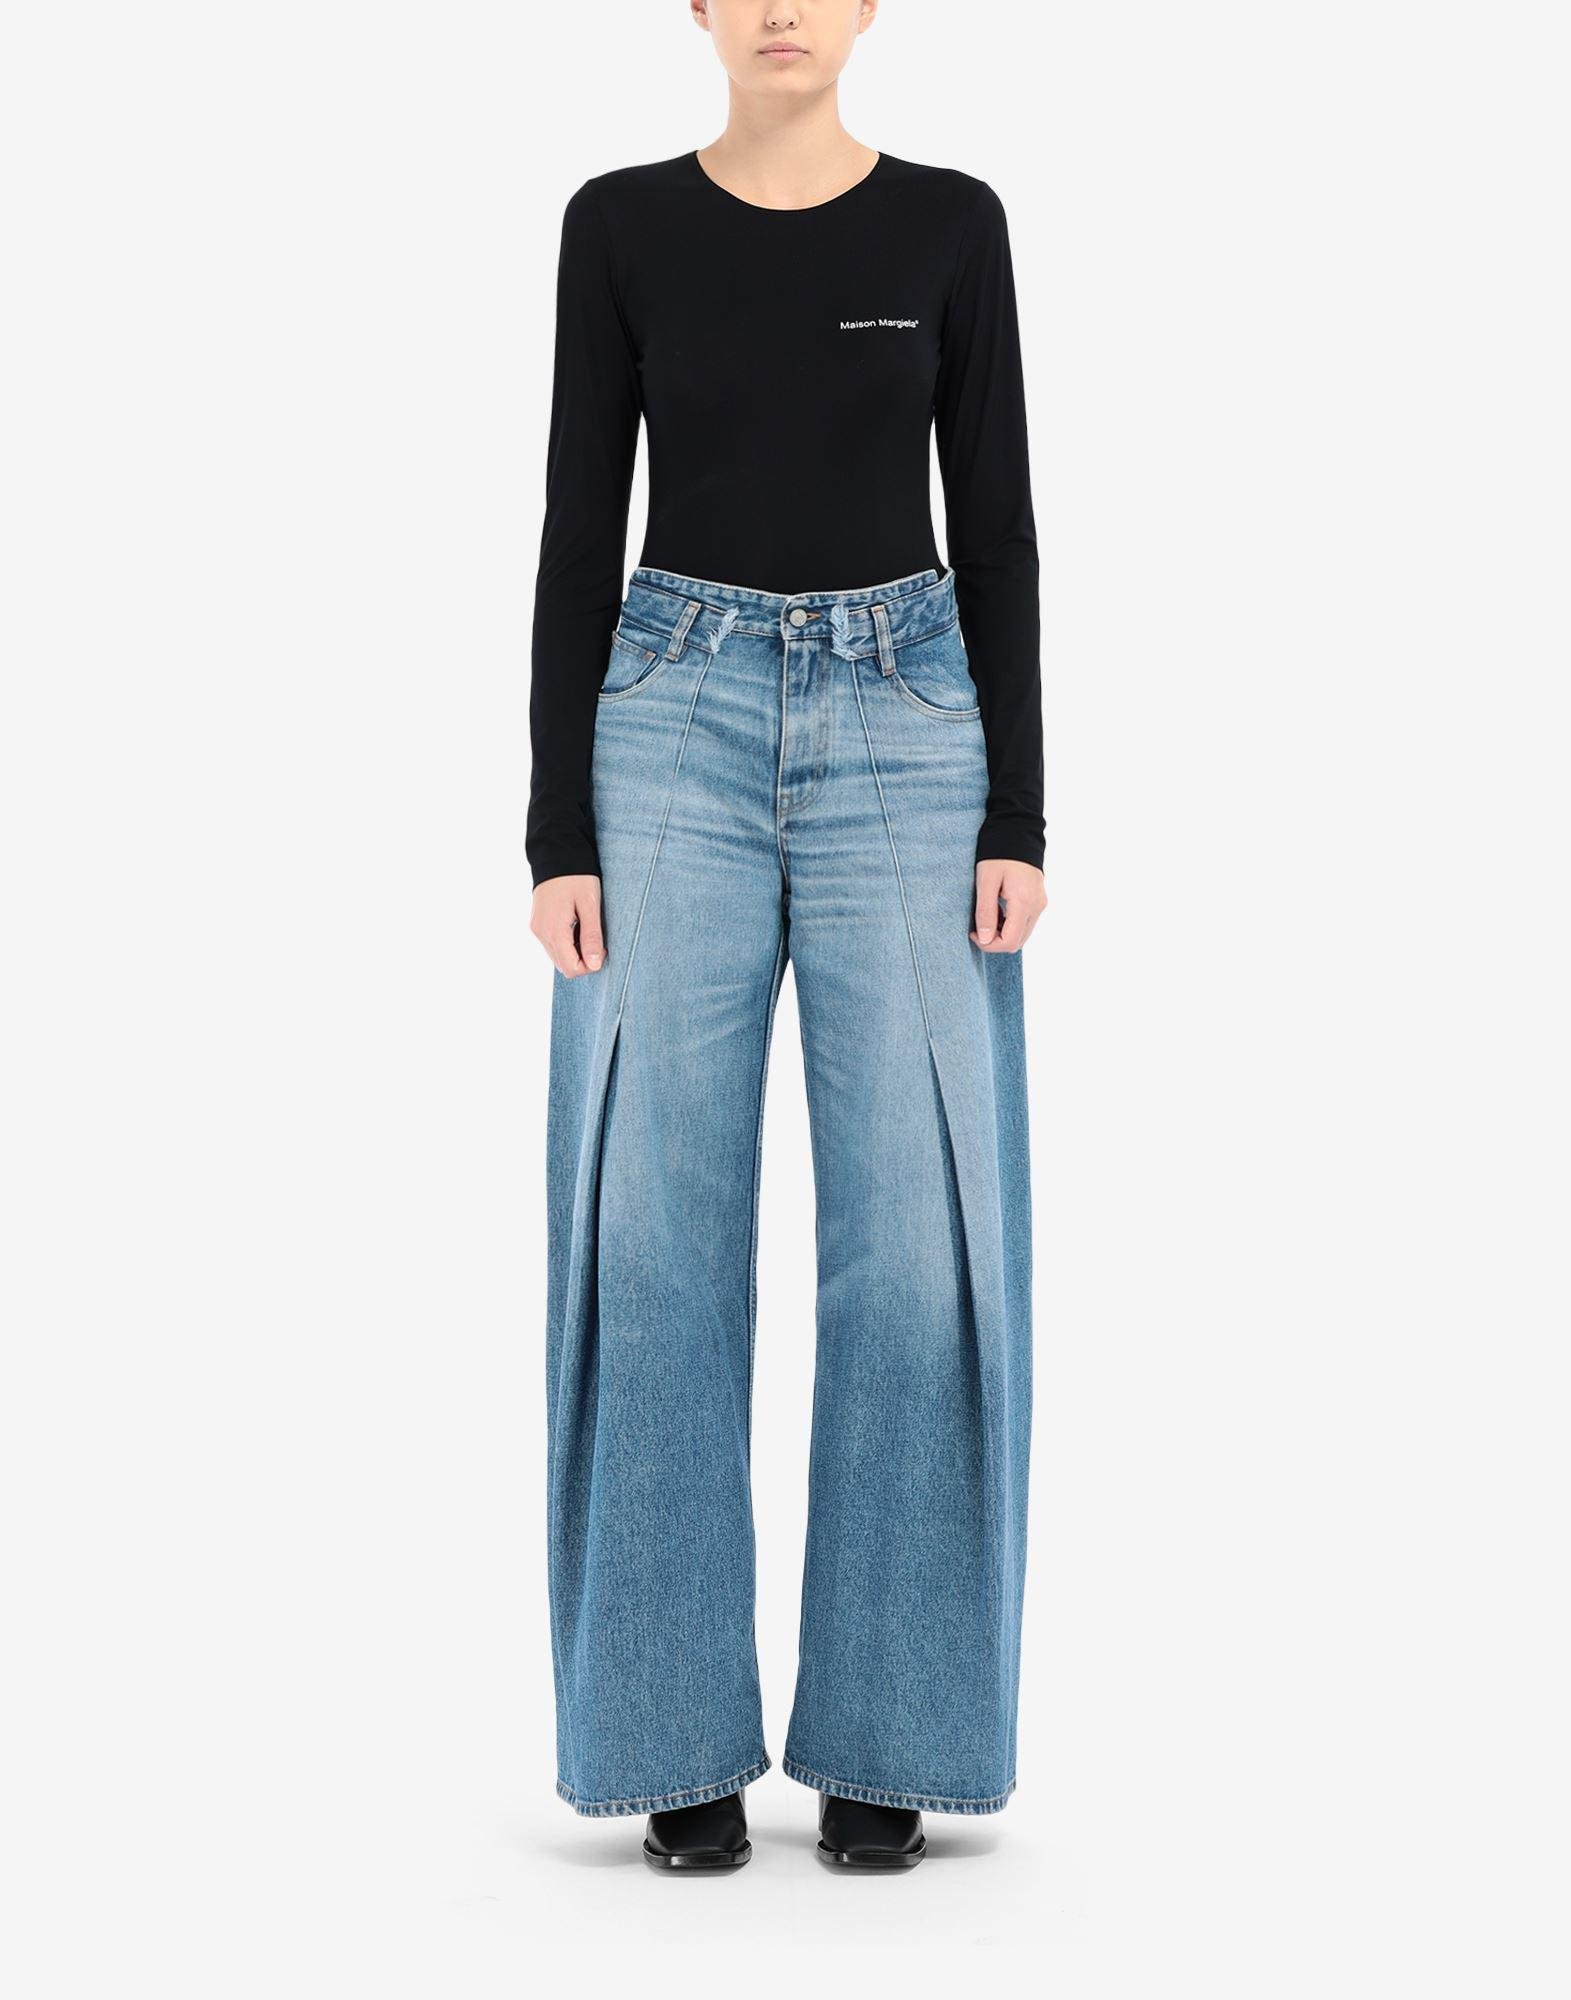 Pintuck flared jeans